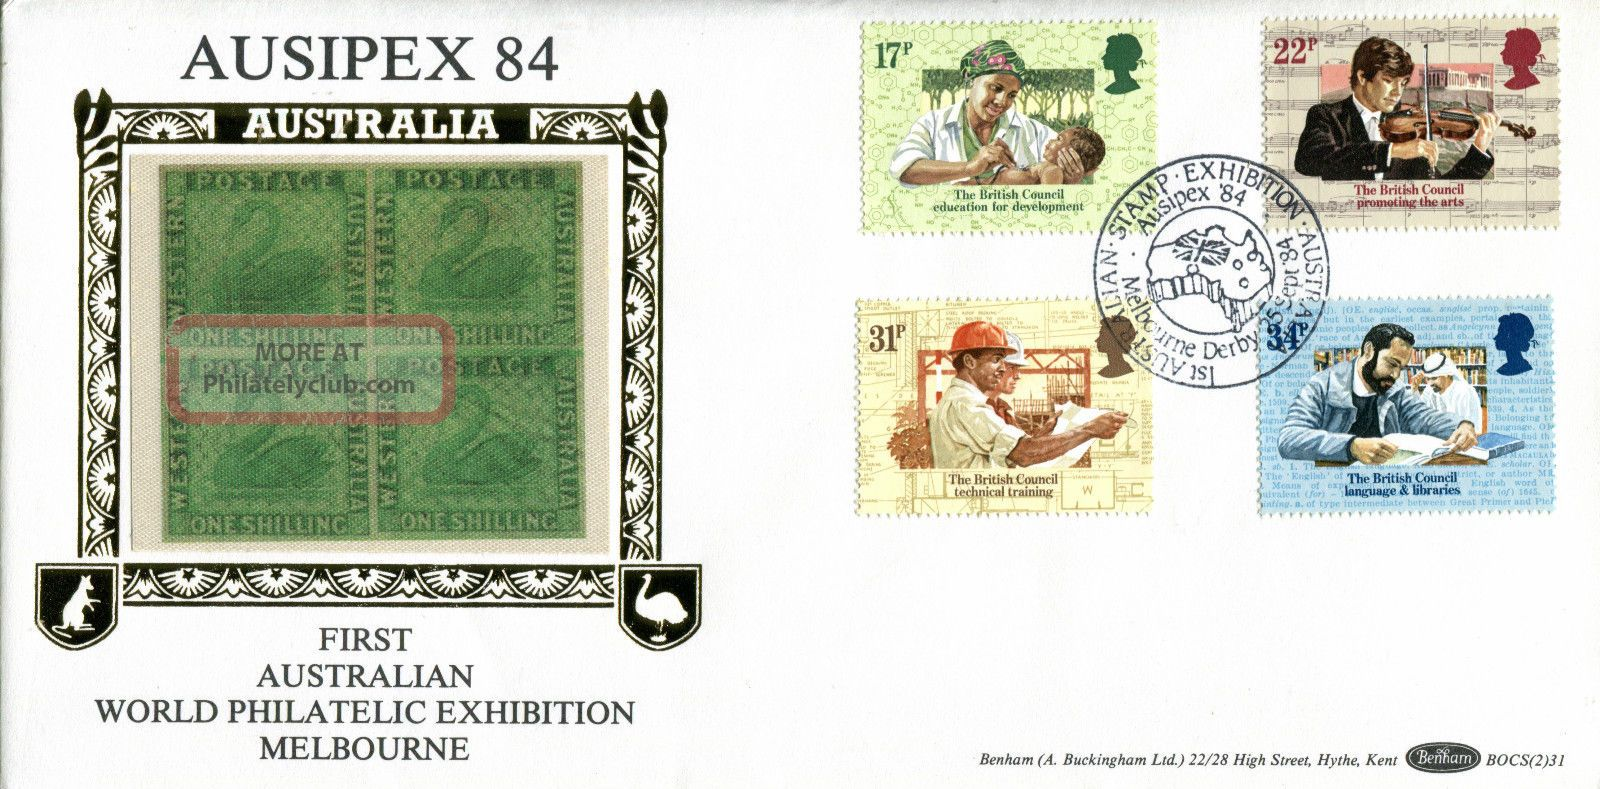 25 September 1984 British Council Benham Bocs (2) 31 First Day Cover Ausipex Shs Topical Stamps photo